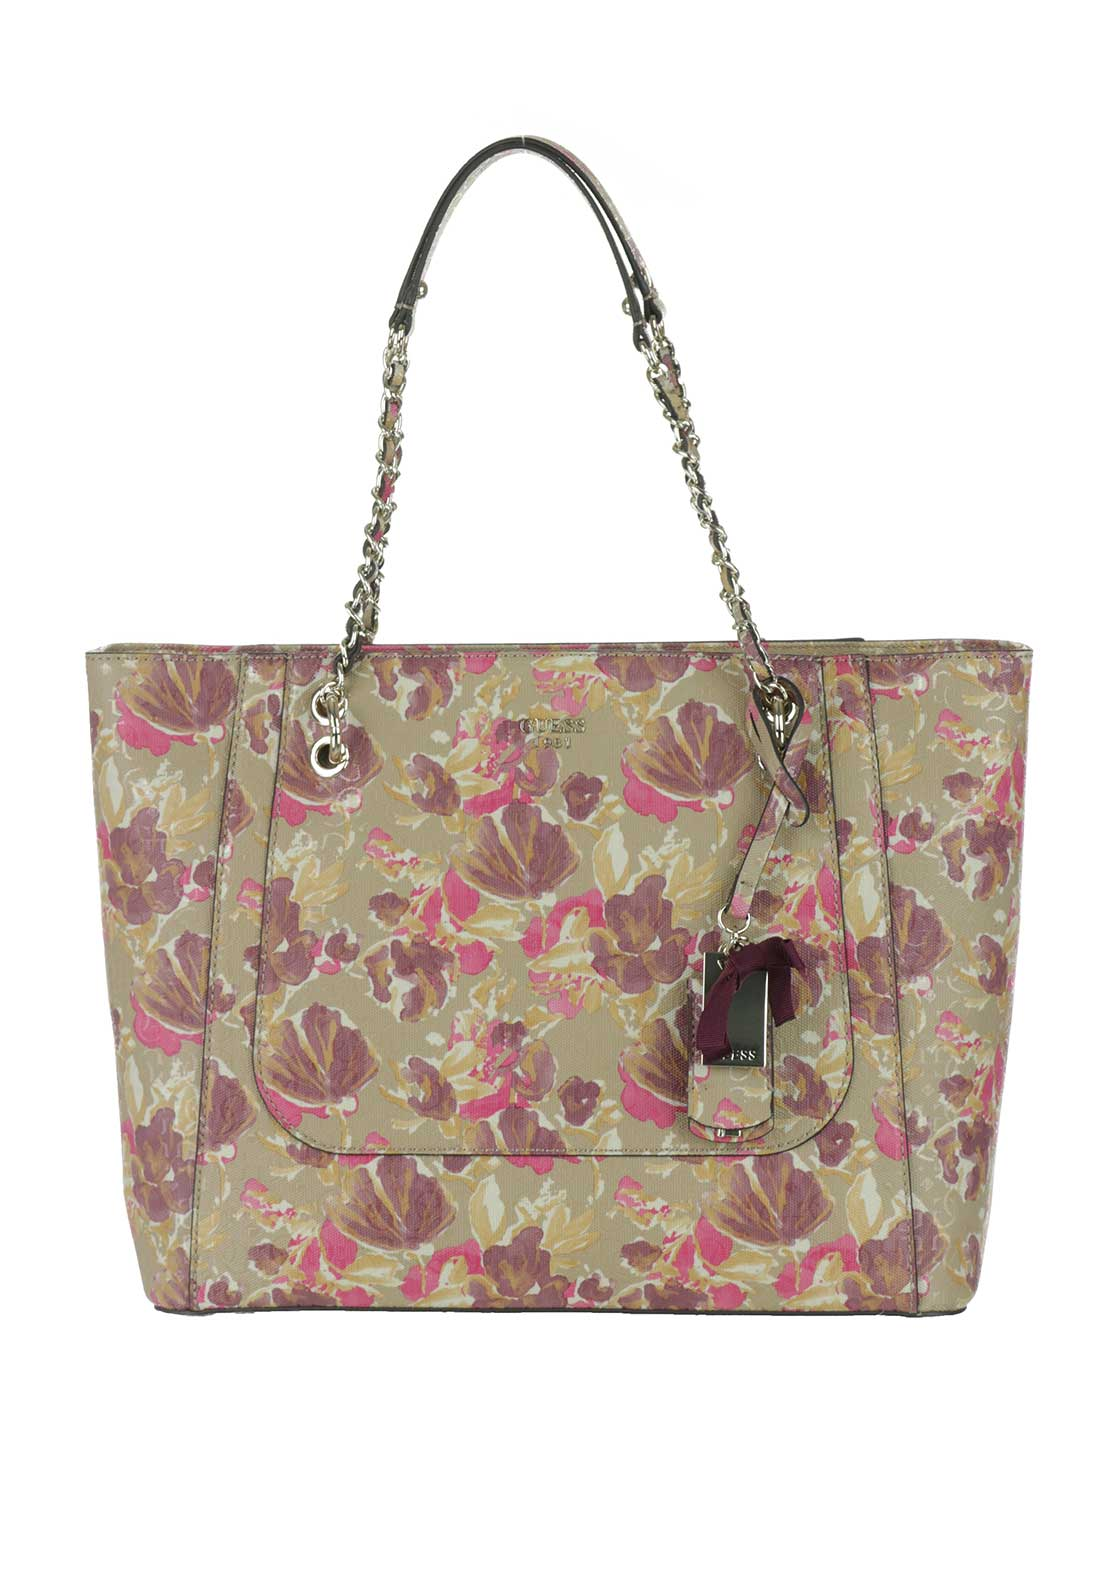 Guess Marian Shopper Bag, Floral Multi